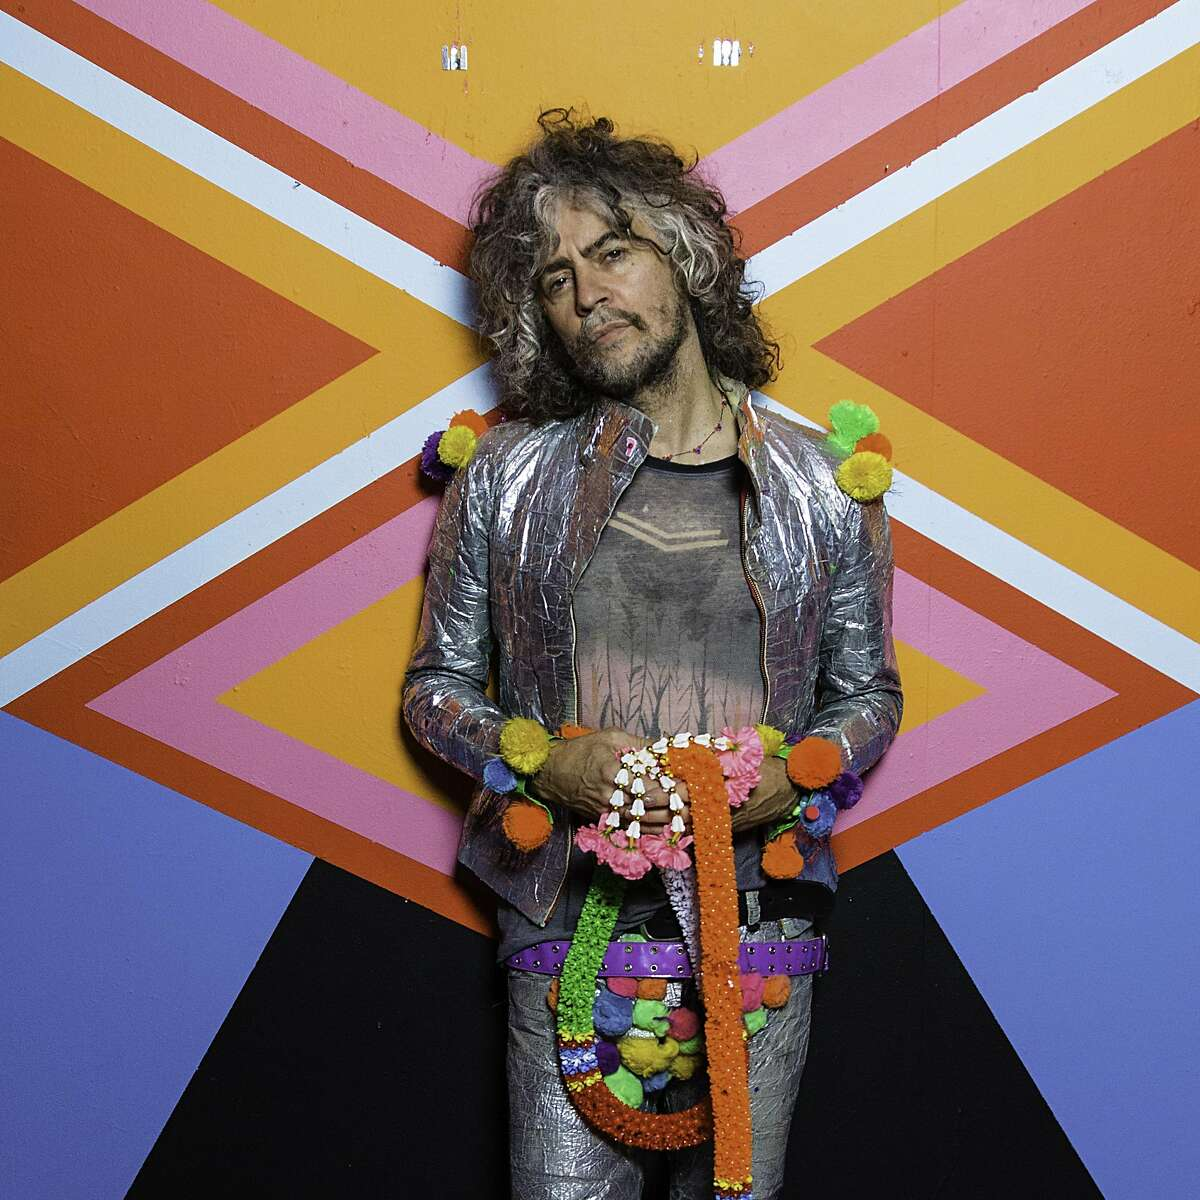 Wayne Coyne is the lead singer of The Flaming Lips, which performs May 10 at the Fox Theater in Oakland.